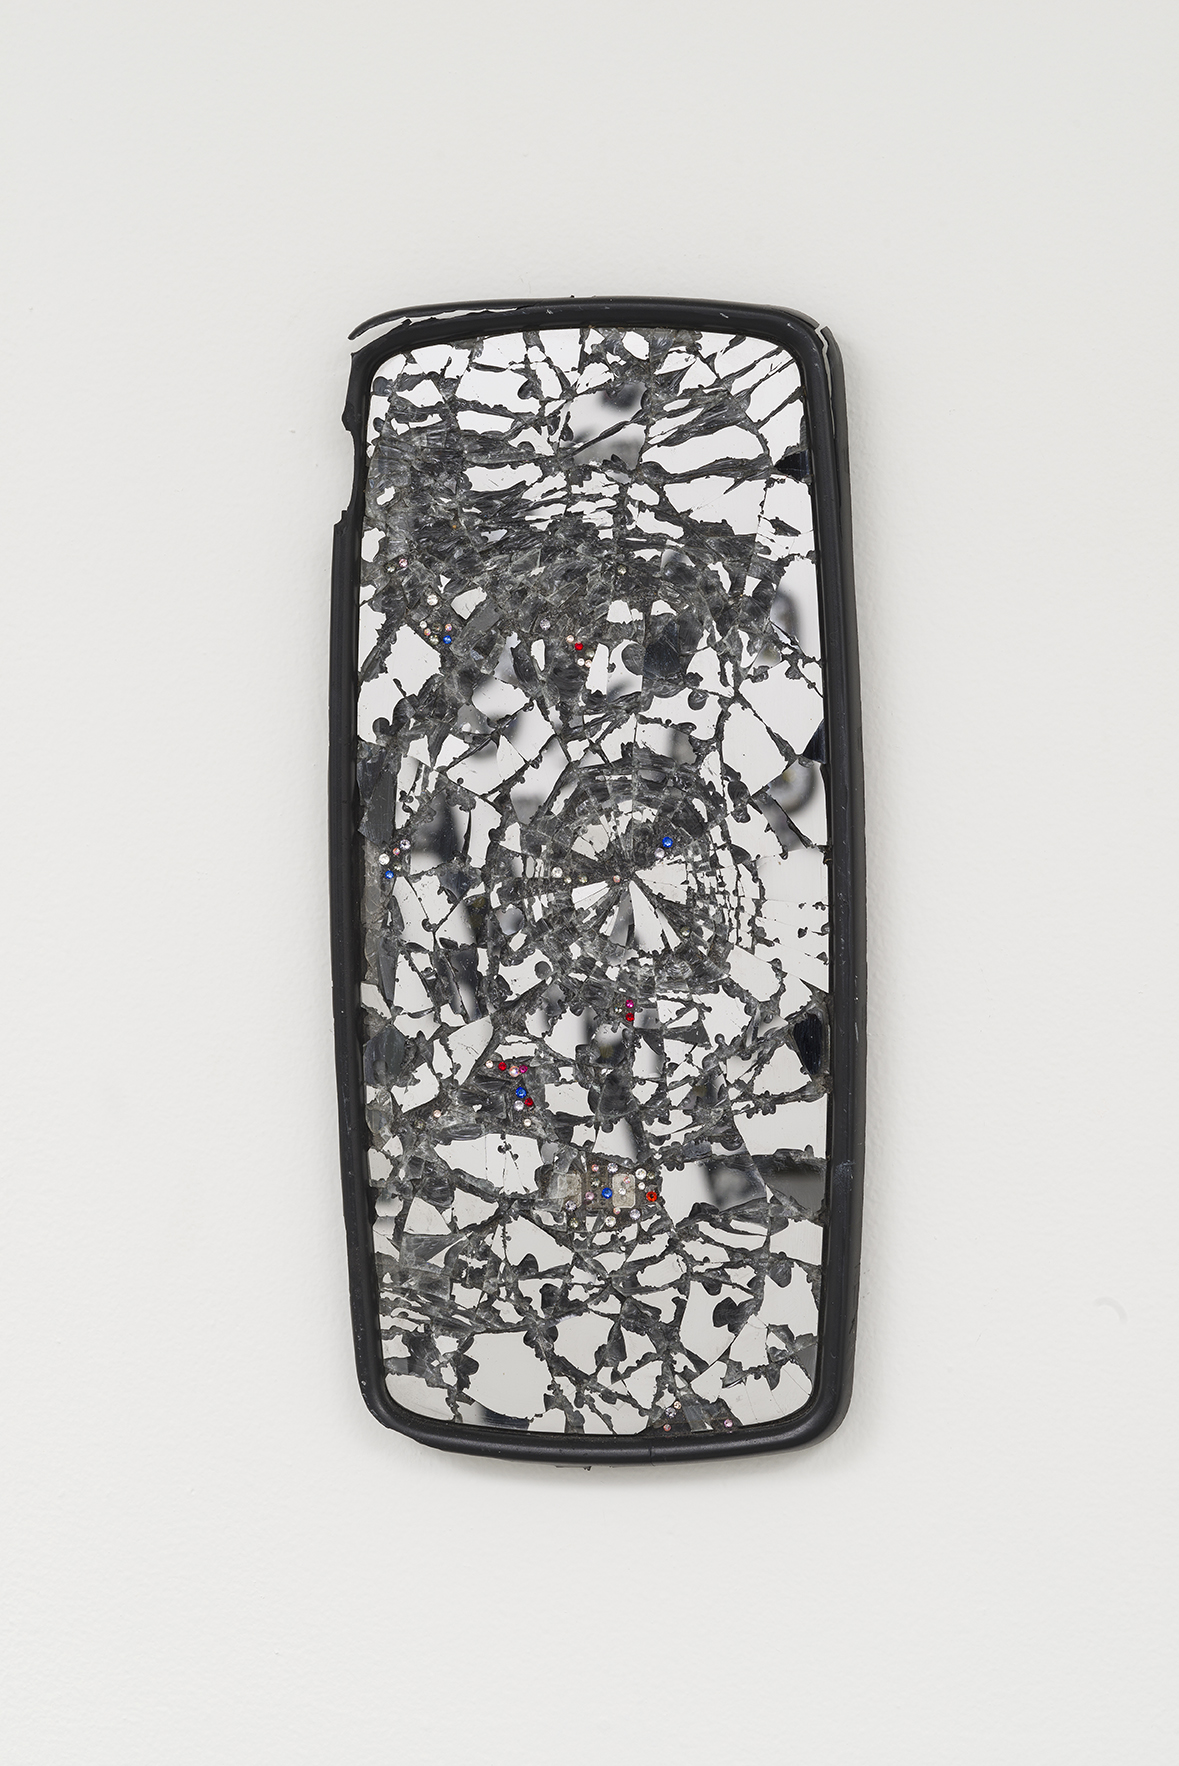 - Cave Mall, 2015, rearview mirror, crystals, 17 x 8 inches